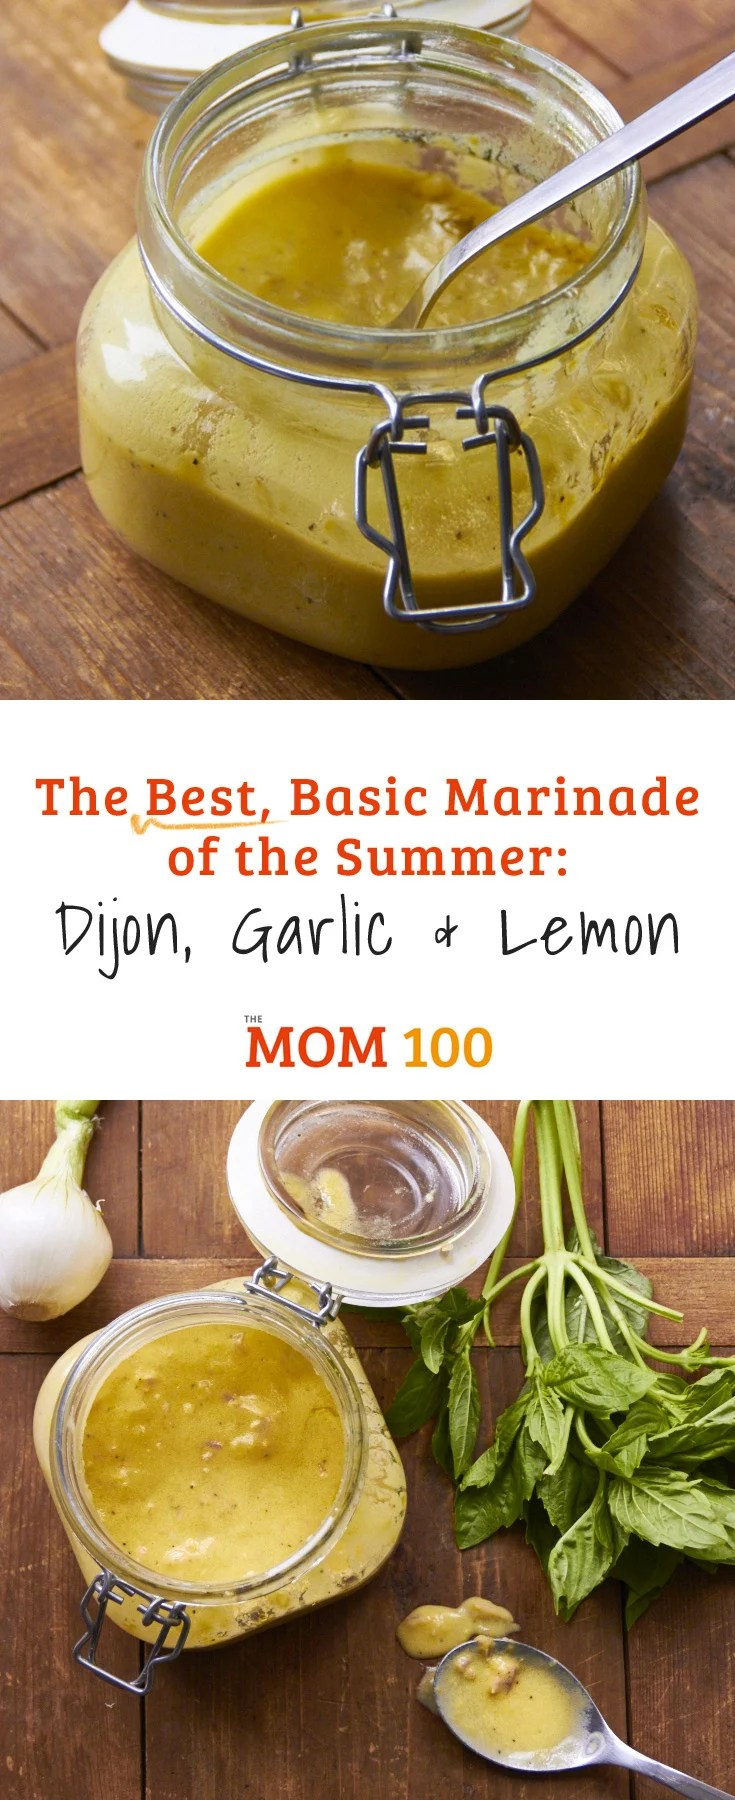 If you want one boilerplate marinade, this is it. This 5-ingredient dijon, garlic and lemon marinade is perfect for chicken, pork, shrimp, and any fish.